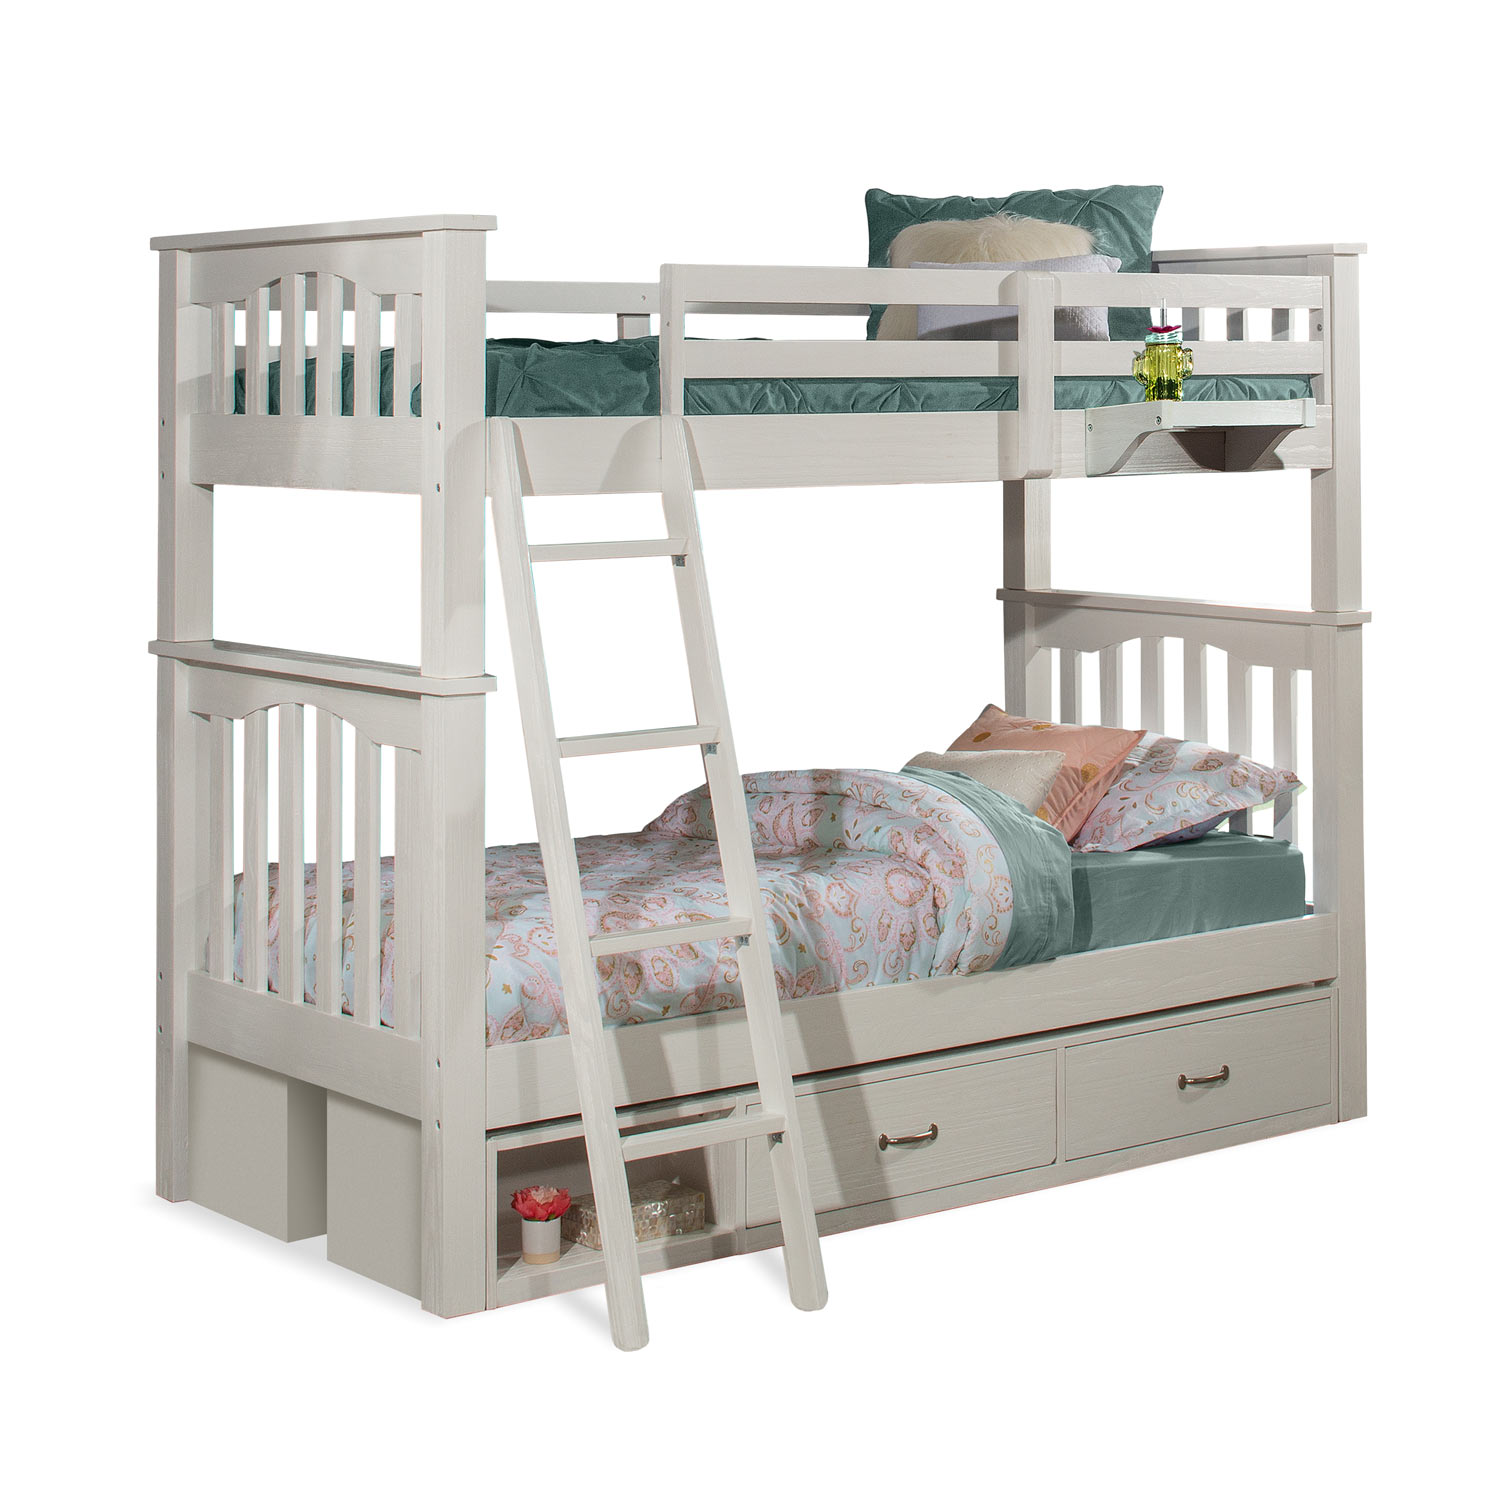 NE Kids Highlands Harper Twin/Twin Bunk Bed with (2) Storage Units and Hanging Nightstand - White Finish